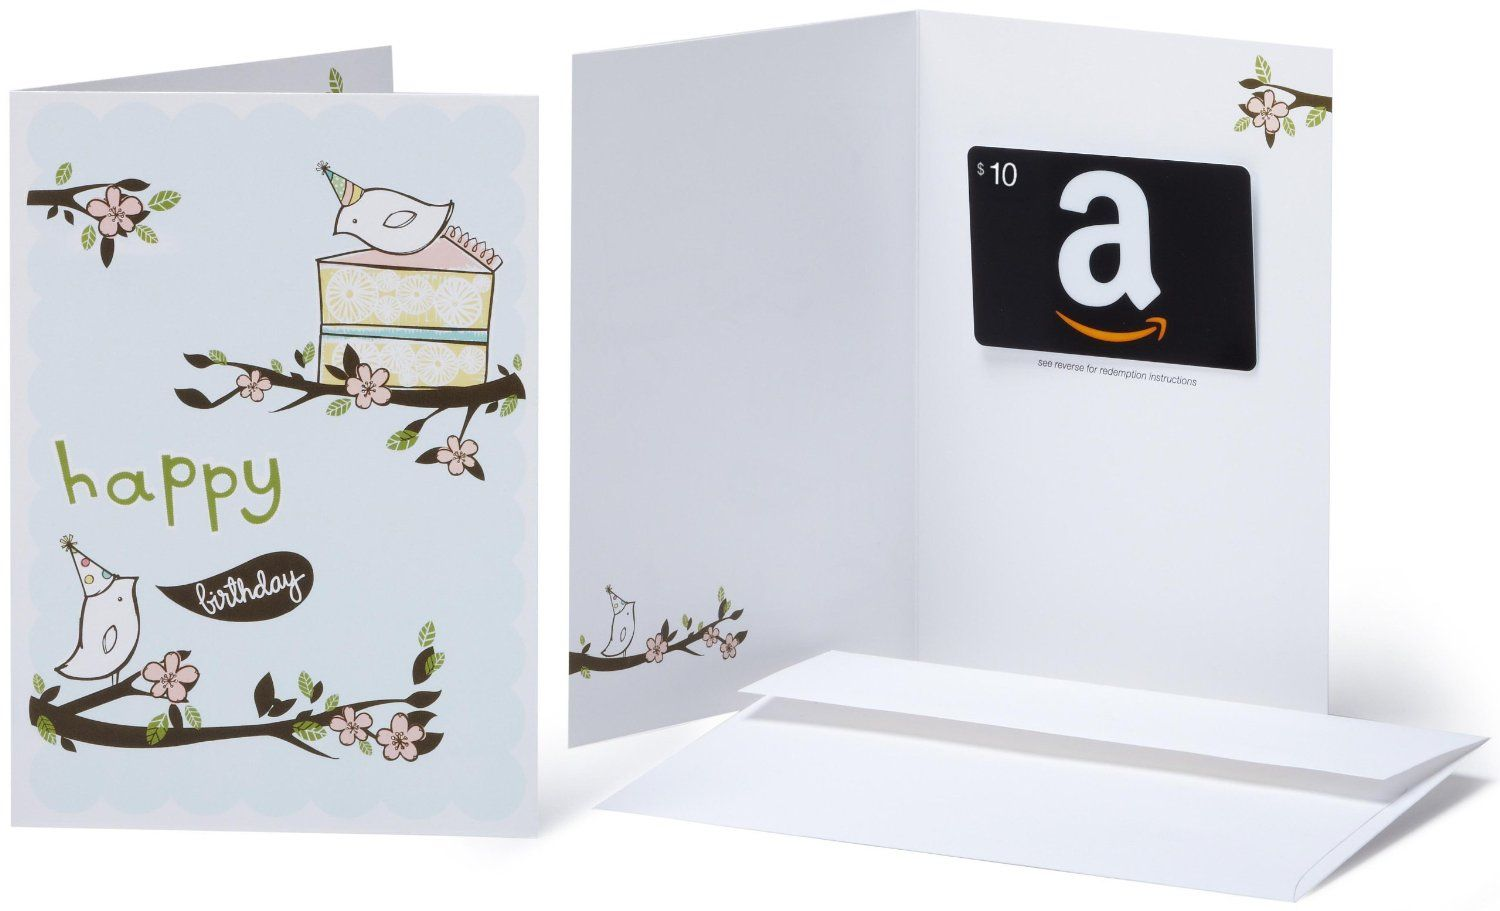 Amazon.com $100 Gift Card in a Greeting Card (Love Card Design) Amazon.com Gift Cards are the perfect way to give them exactly what they're hoping for - even if you don't know what it is. Amazon.com  Read more http://cosmeticcastle.net/amazon-com-100-gift-card-in-a-greeting-card-love-card-design/  Visit http://cosmeticcastle.net to read cosmetic reviews